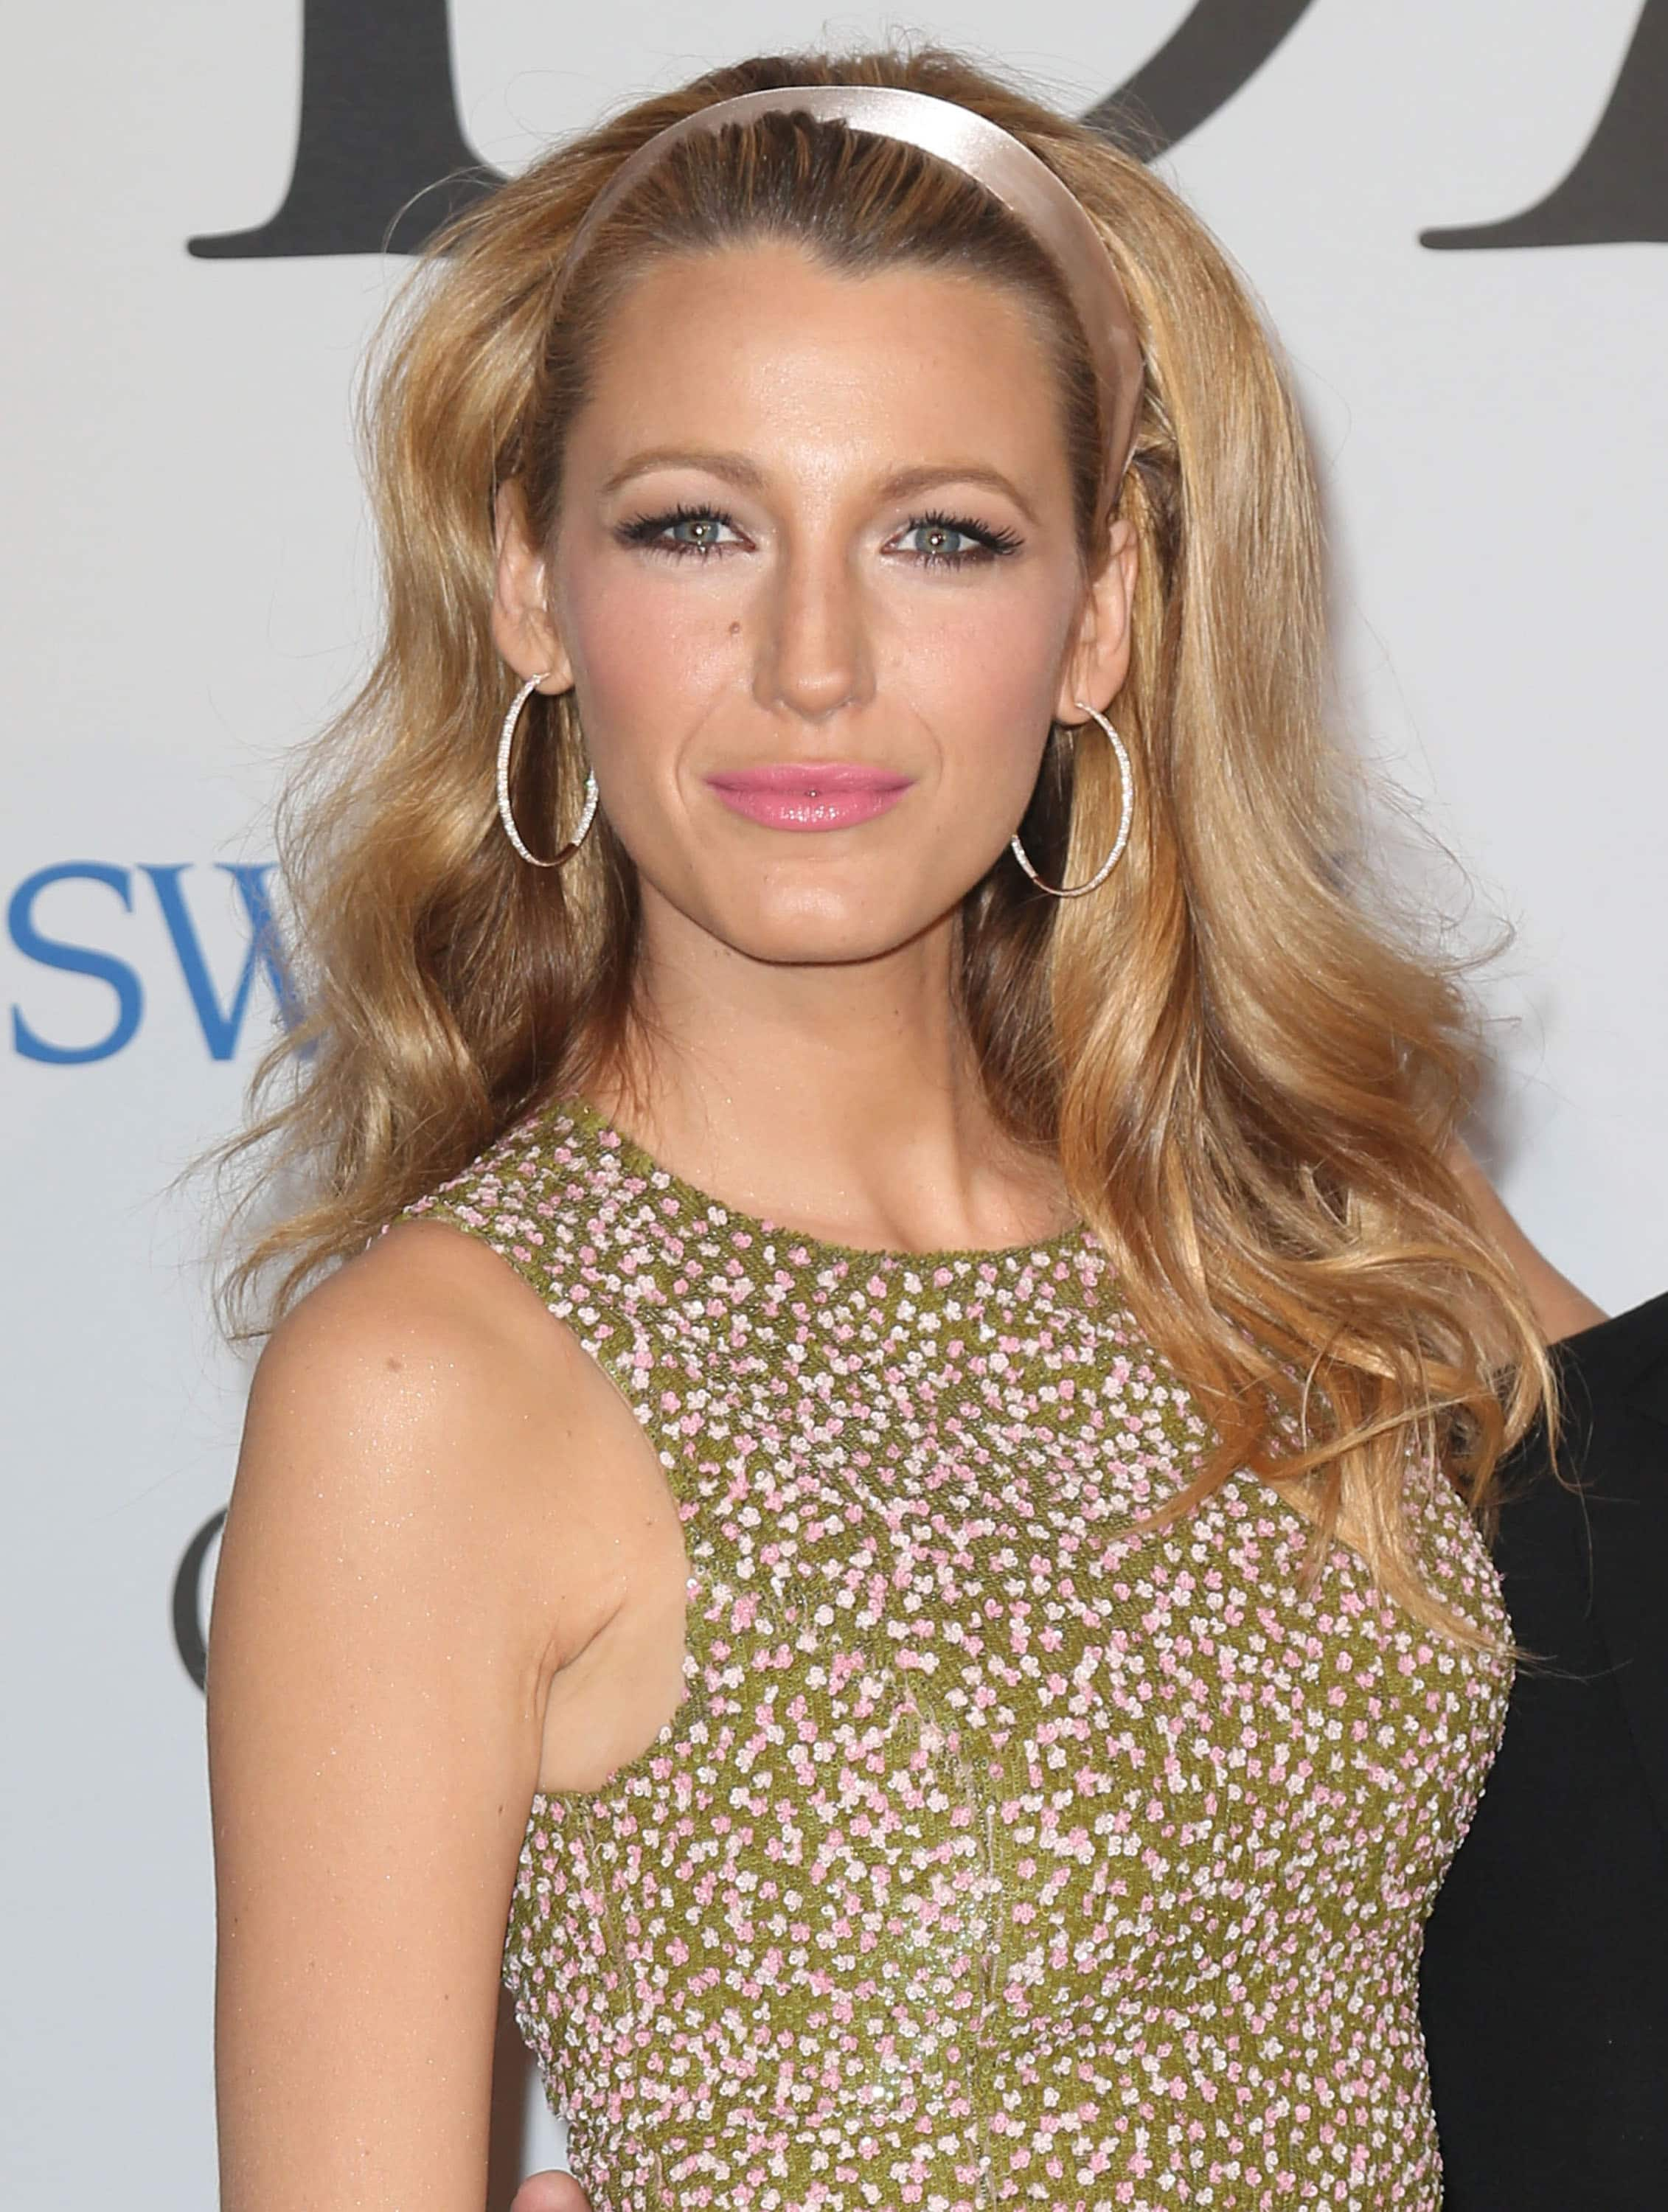 Blake Lively to be a part of Woody Allen's latest project